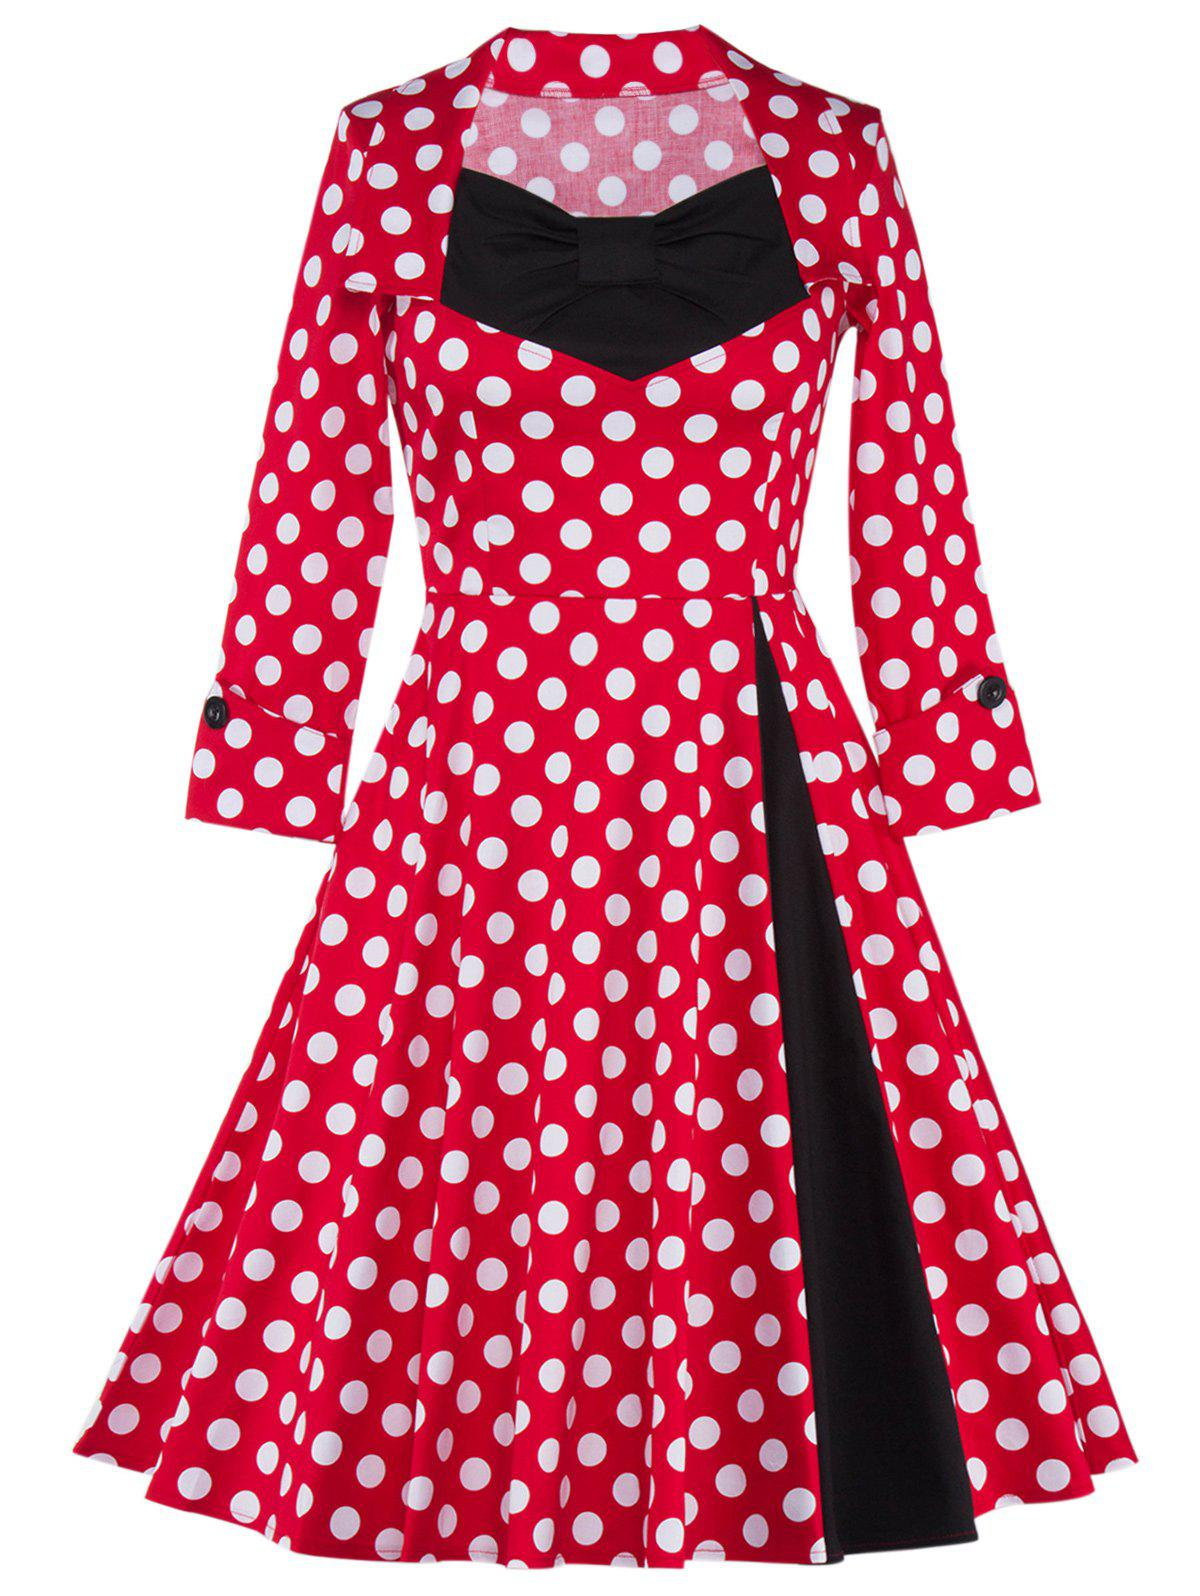 Bowknot Polka Dot Insert Swing Dress от Dresslily.com INT